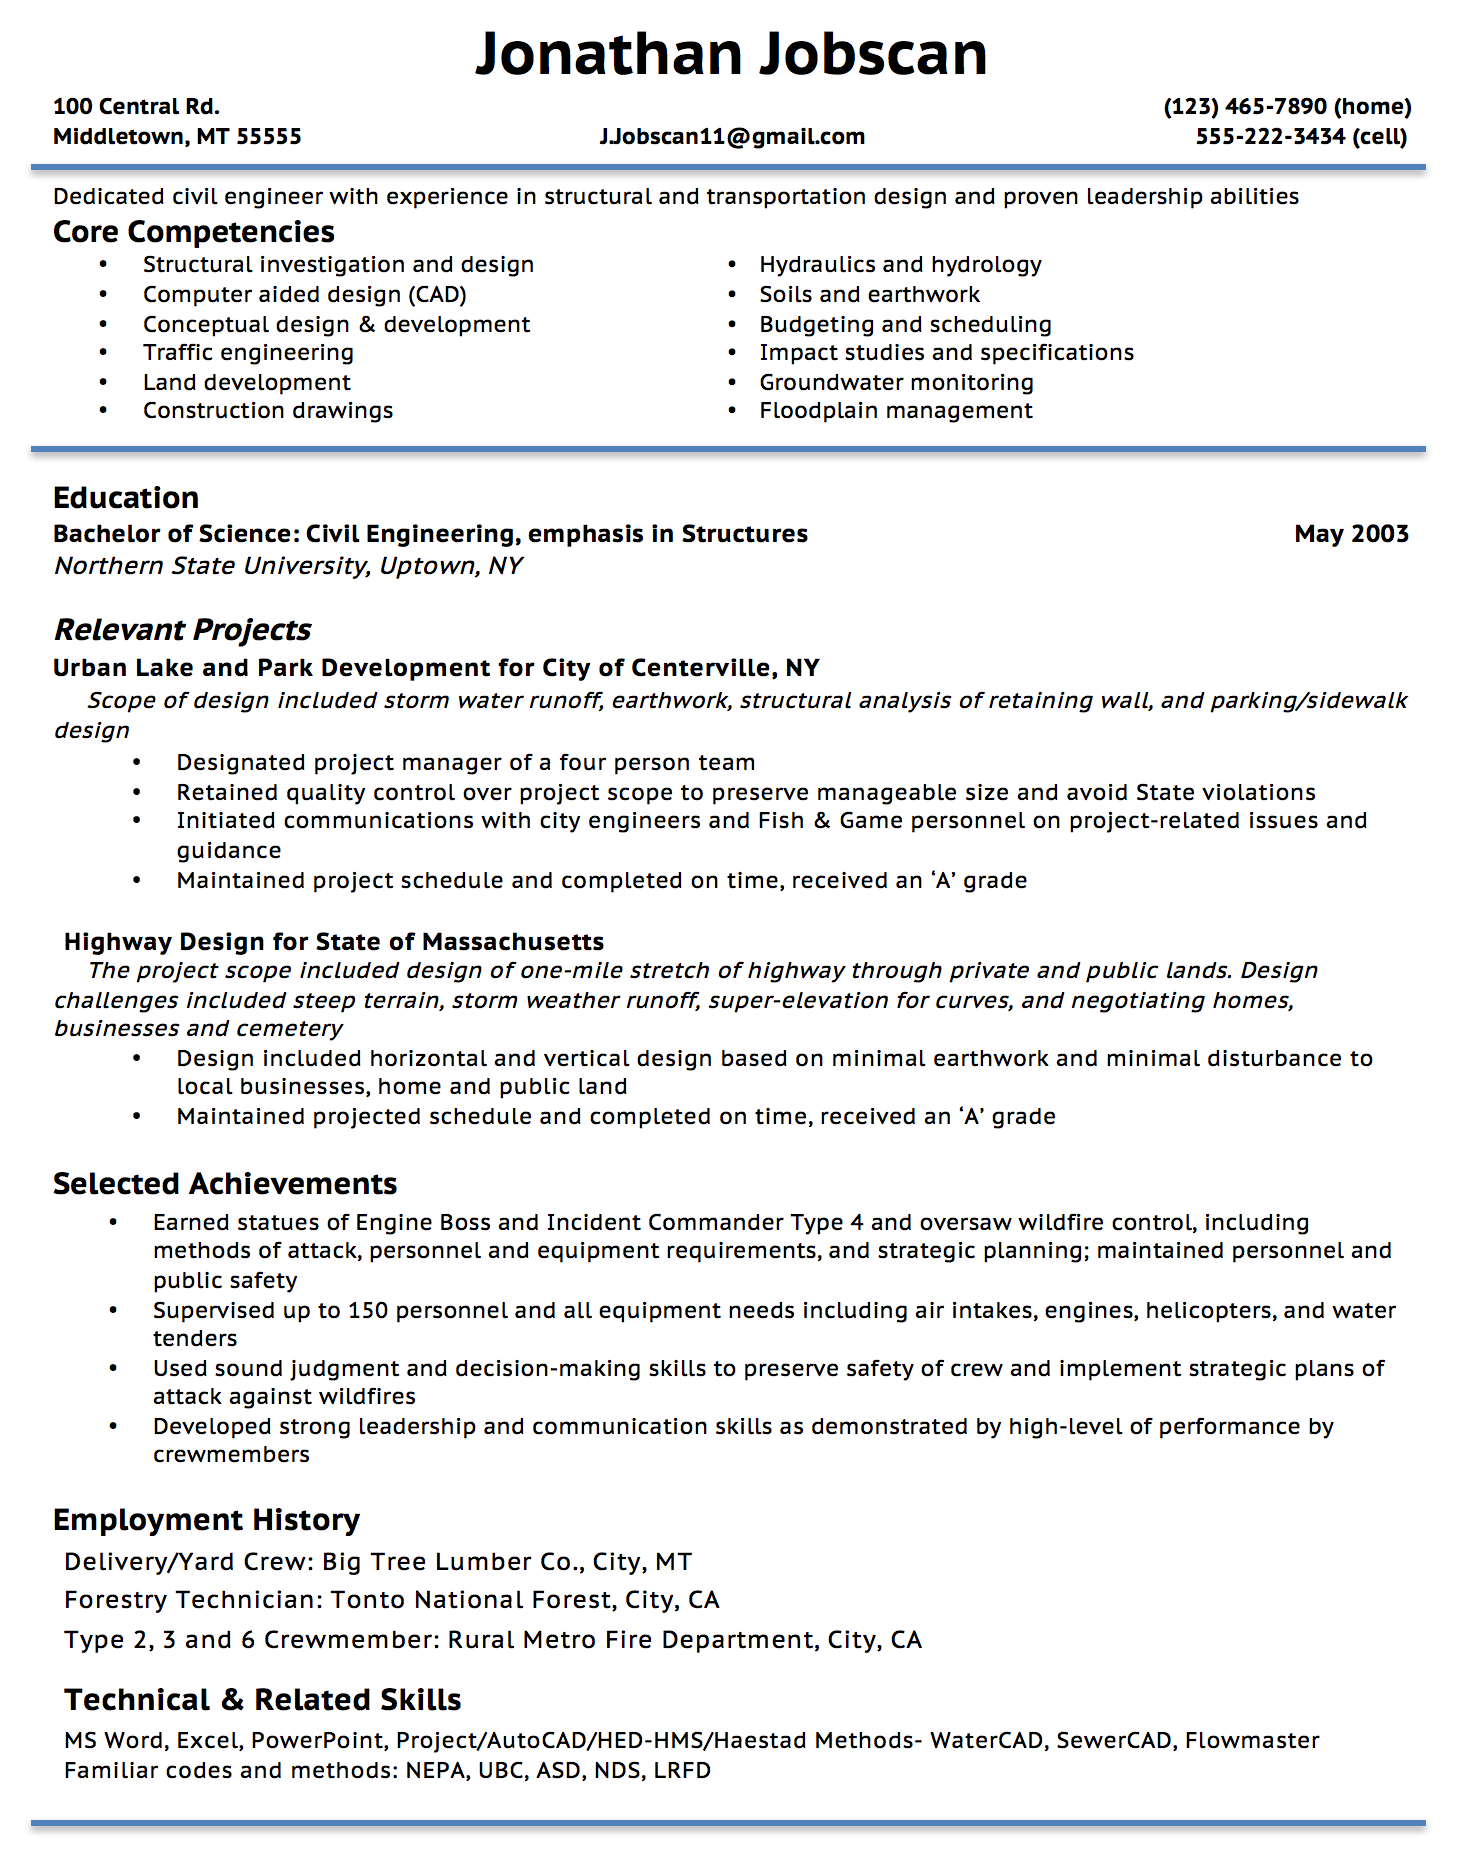 Opposenewapstandardsus  Terrific Resume Writing Guide  Jobscan With Excellent Example Of A Functional Resume Format With Divine Waiter Resume Skills Also Customer Service Agent Resume In Addition Sap Sd Resume And Skills To Put On Resumes As Well As Good Resume Names Additionally Good Resume Objectives Examples From Jobscanco With Opposenewapstandardsus  Excellent Resume Writing Guide  Jobscan With Divine Example Of A Functional Resume Format And Terrific Waiter Resume Skills Also Customer Service Agent Resume In Addition Sap Sd Resume From Jobscanco